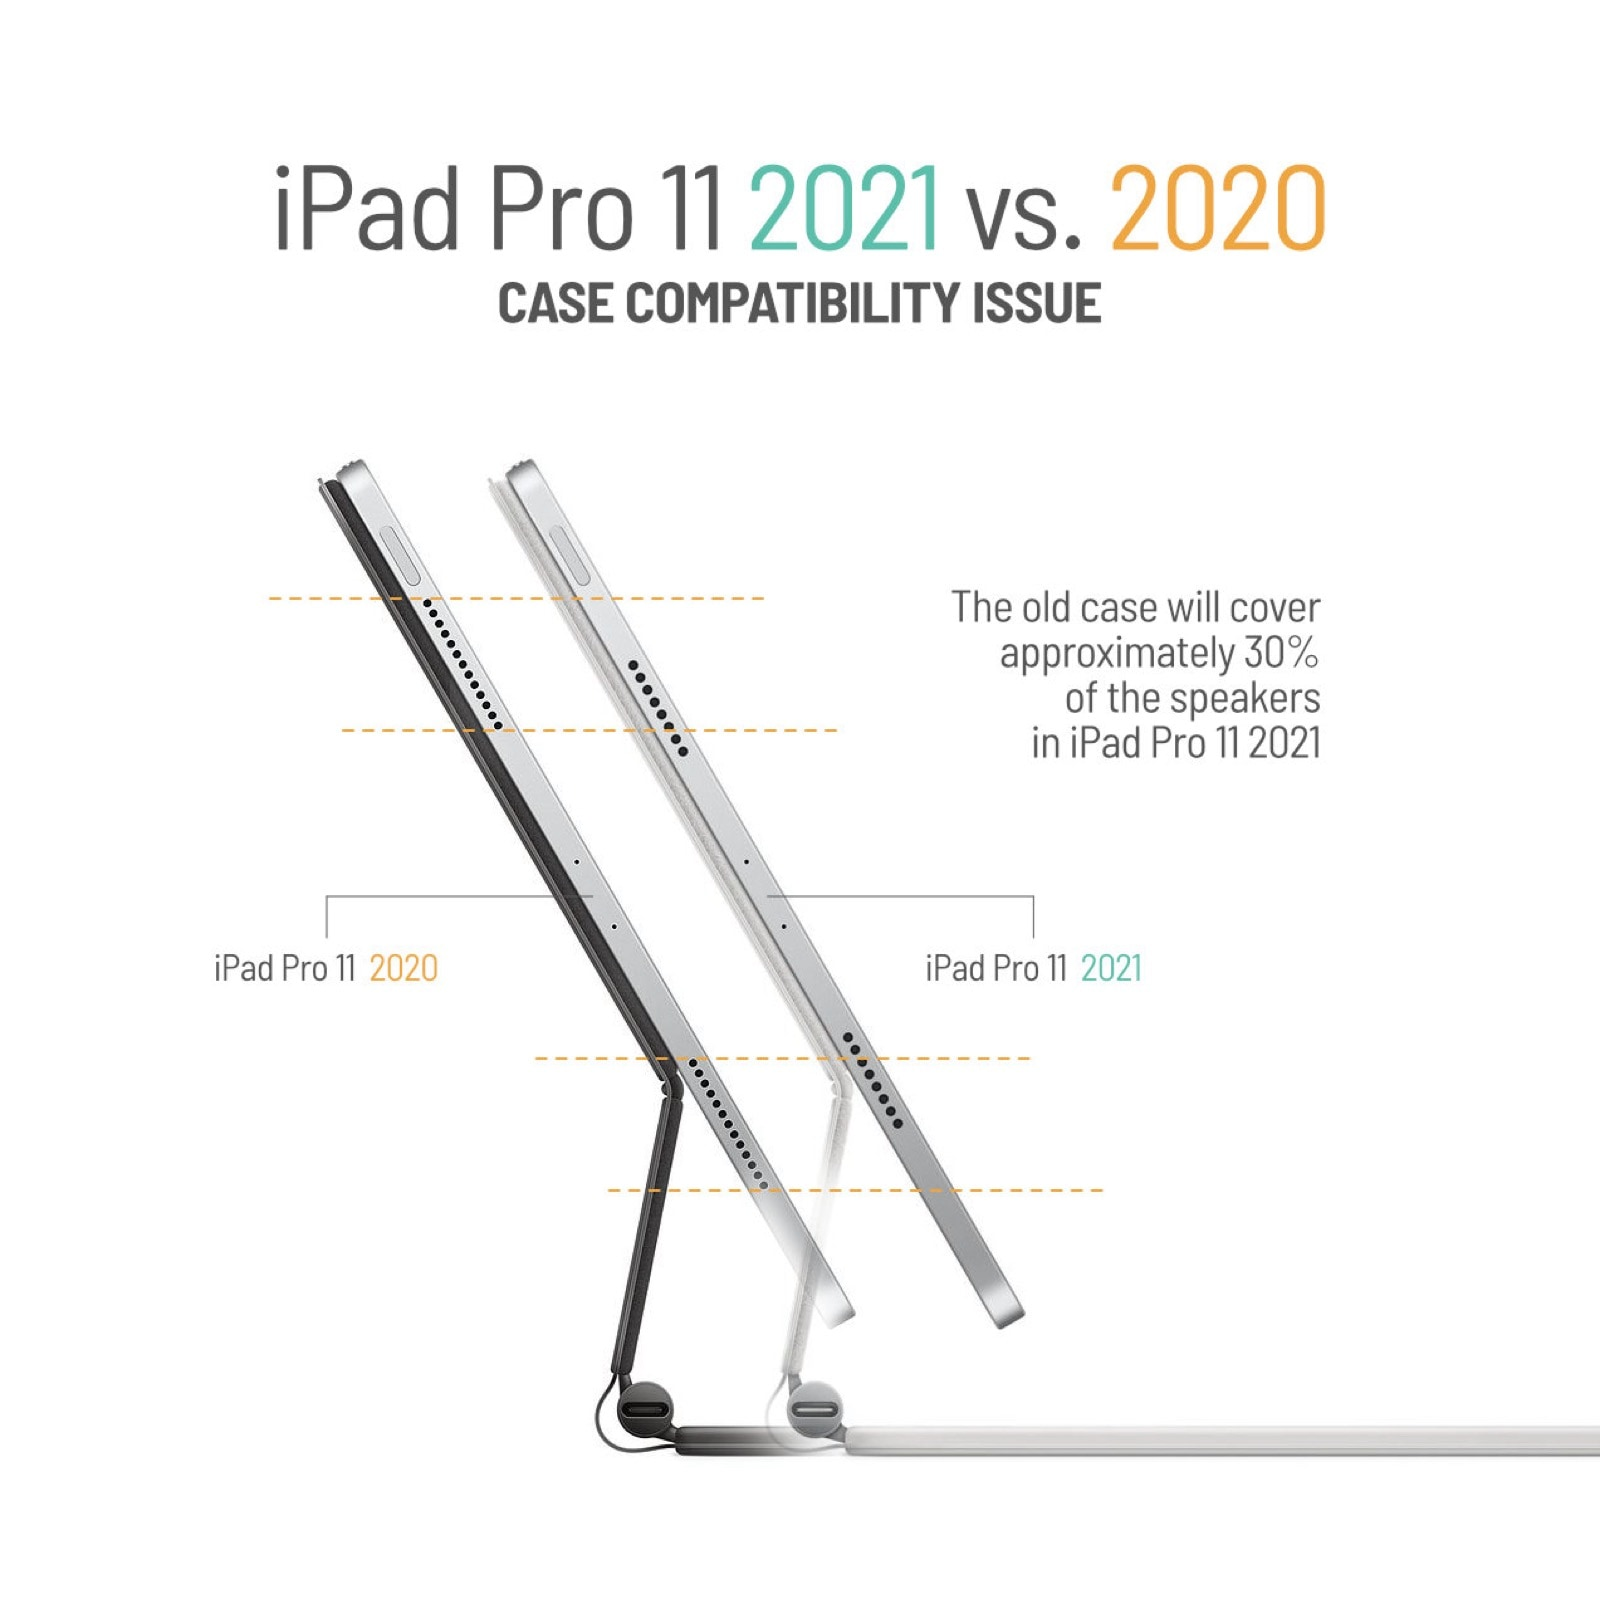 Will old case fit iPad Pro 11 2021 - speakers covered